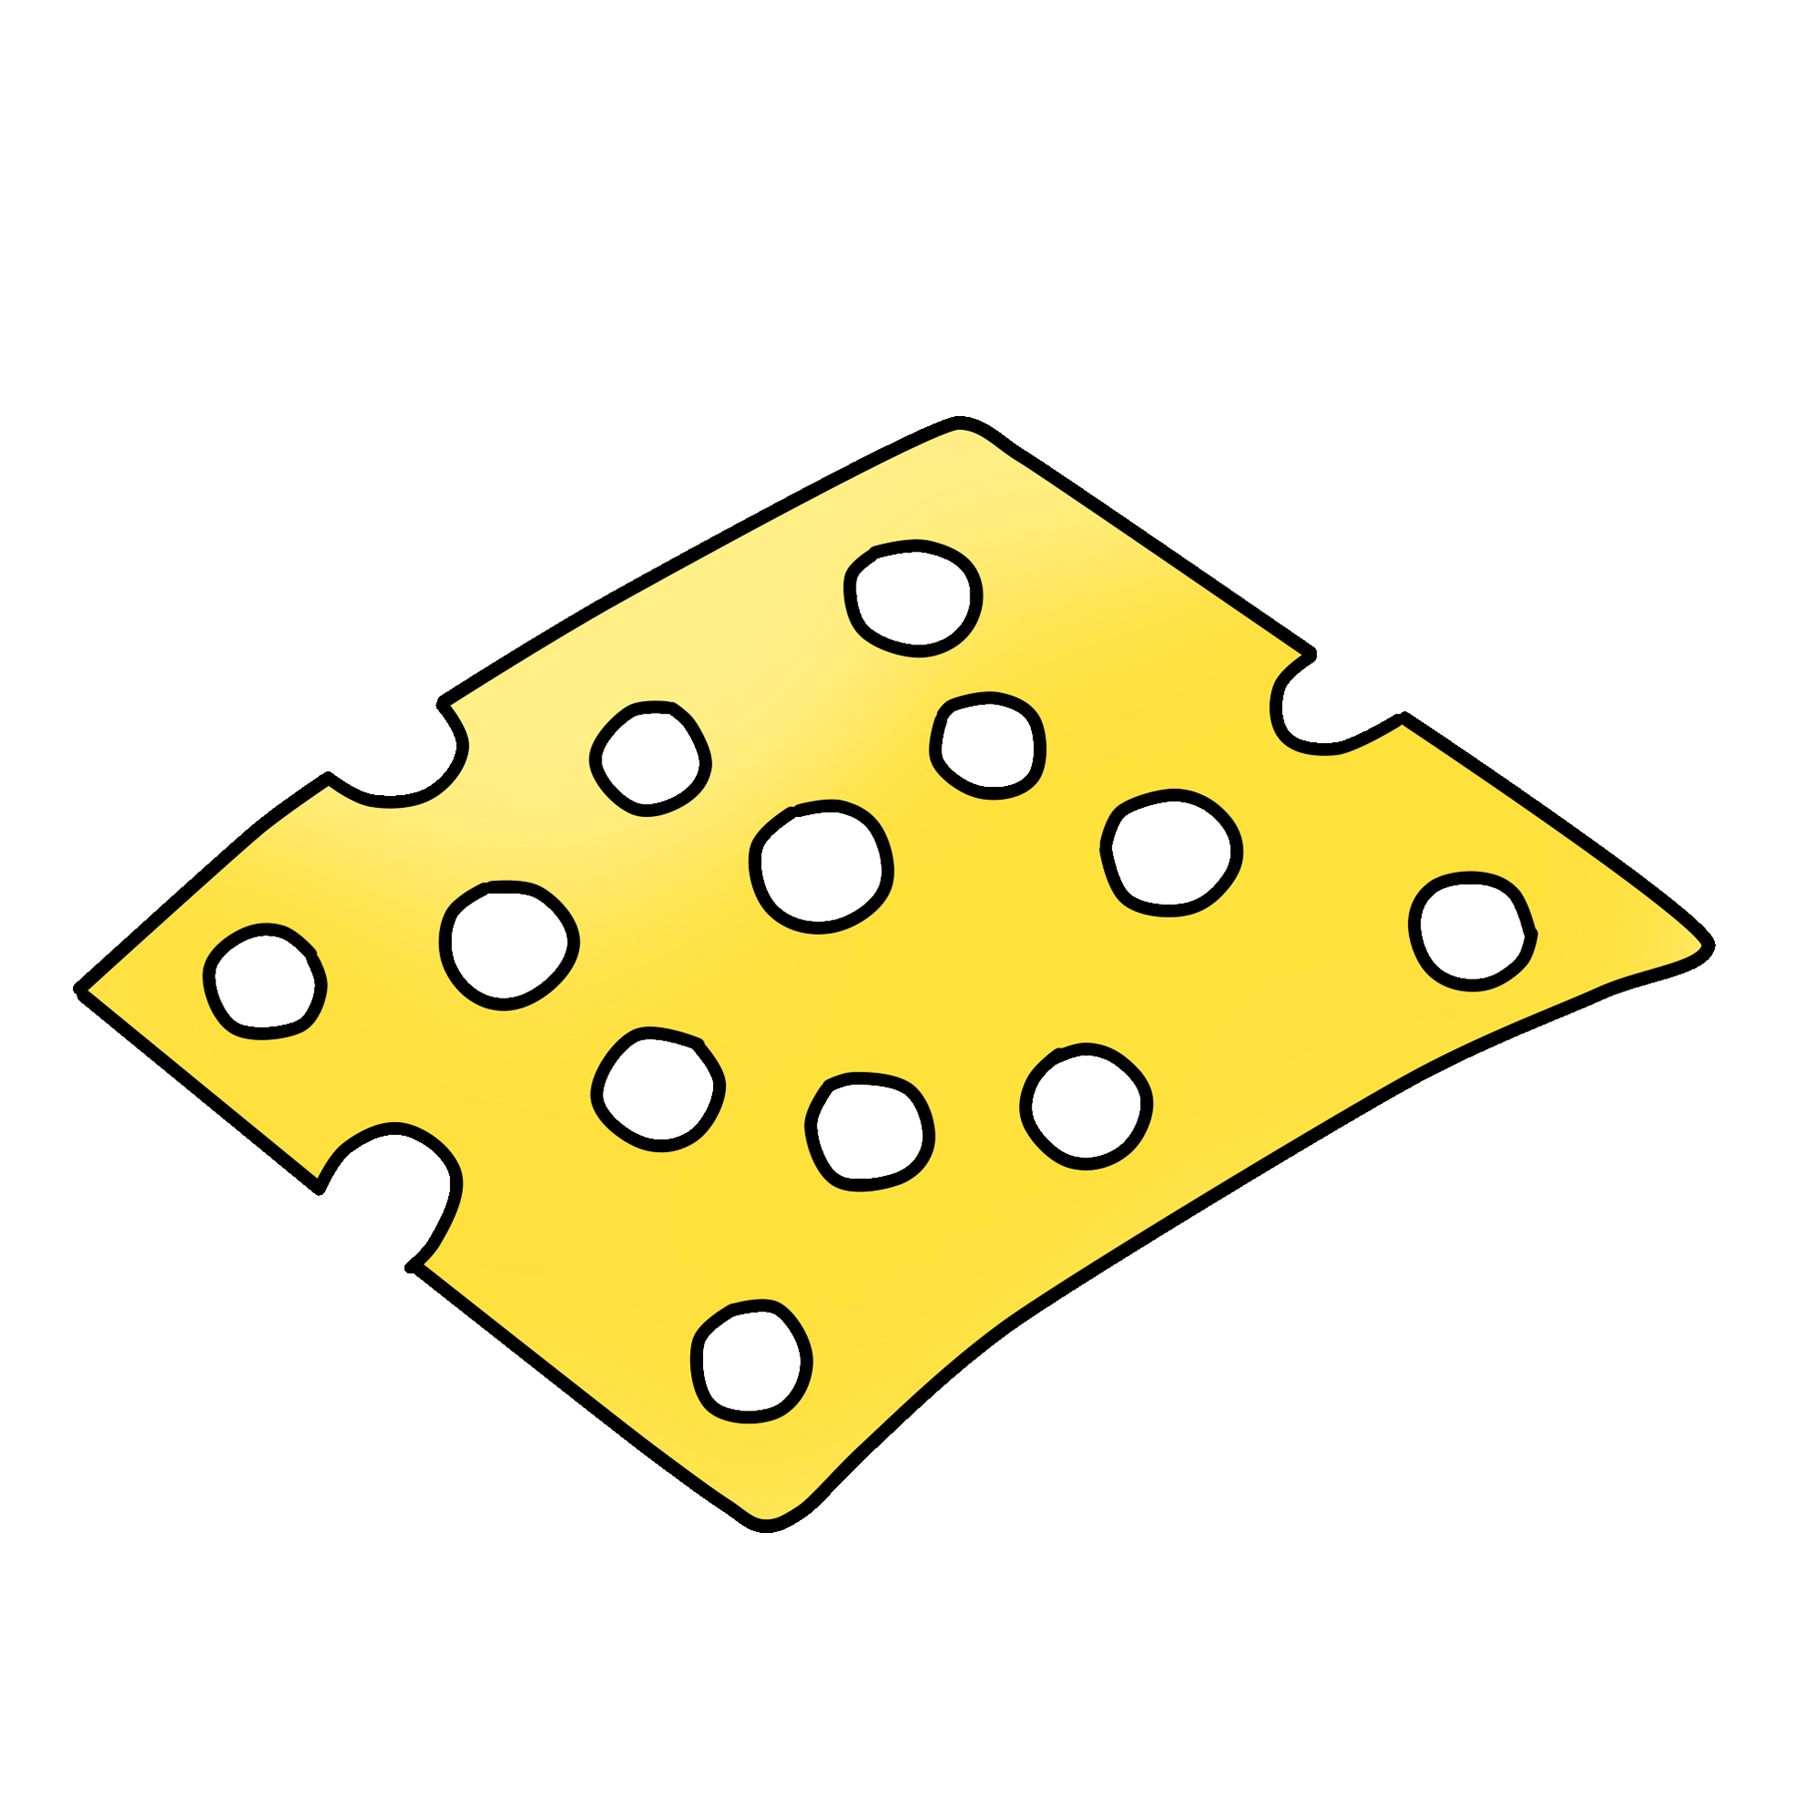 Swiss Cheese Clipart Download Graphic Clipart 4 School Clip Art Free Clip Art Graphic Includes camembert, cheddar, emmental, gorgonzola, gouda, grana padano, morbier. swiss cheese clipart download graphic